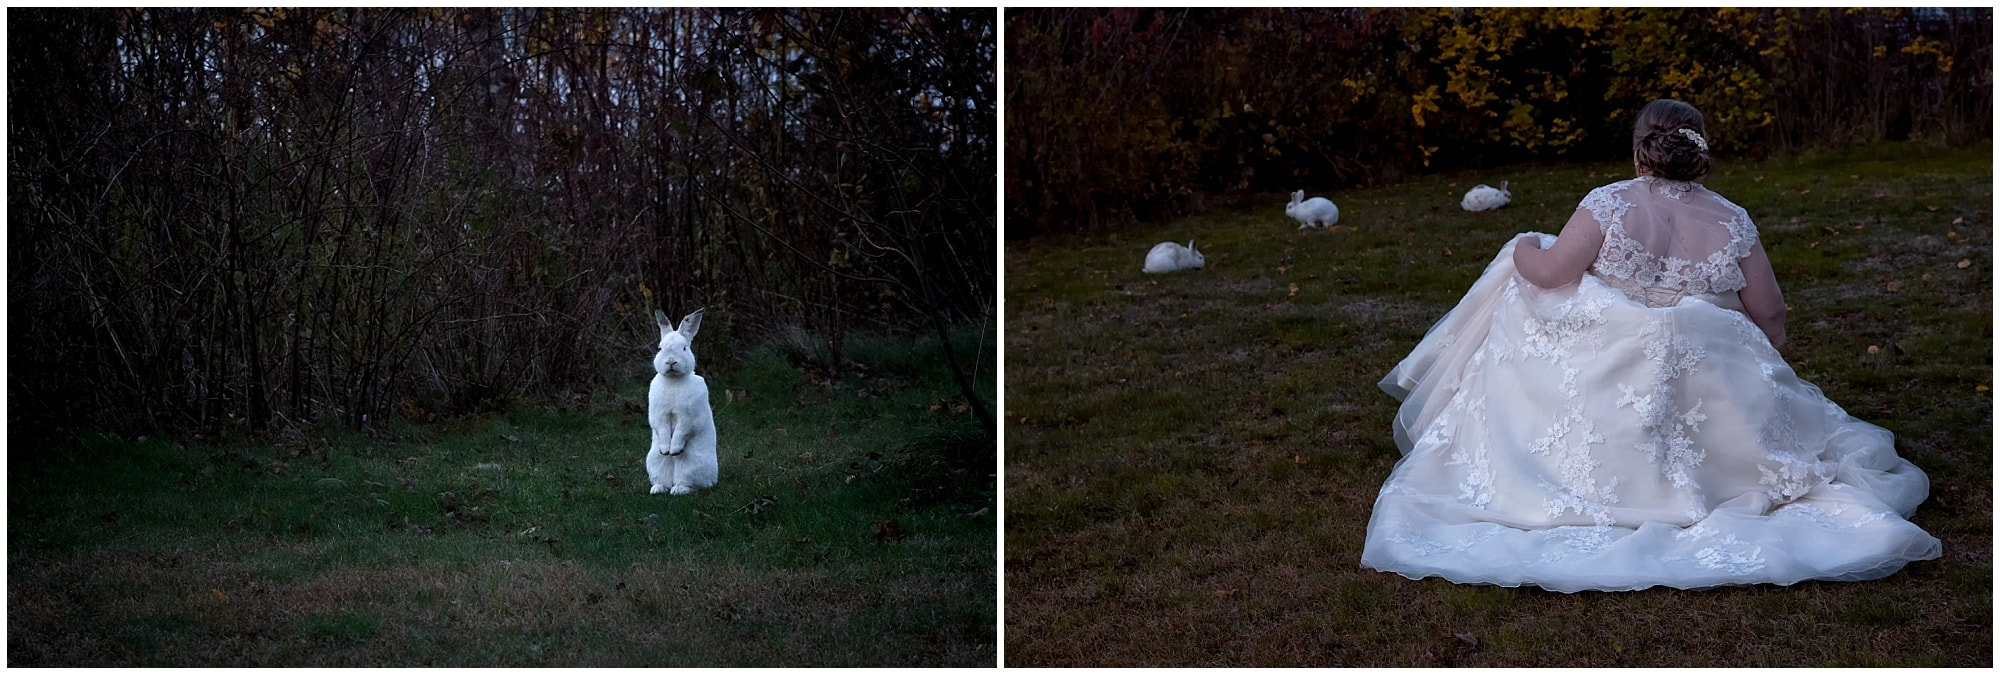 A bride sneaking up to the bunnies trying to keep her dress quiet so she can hopefully feed one at White Point.